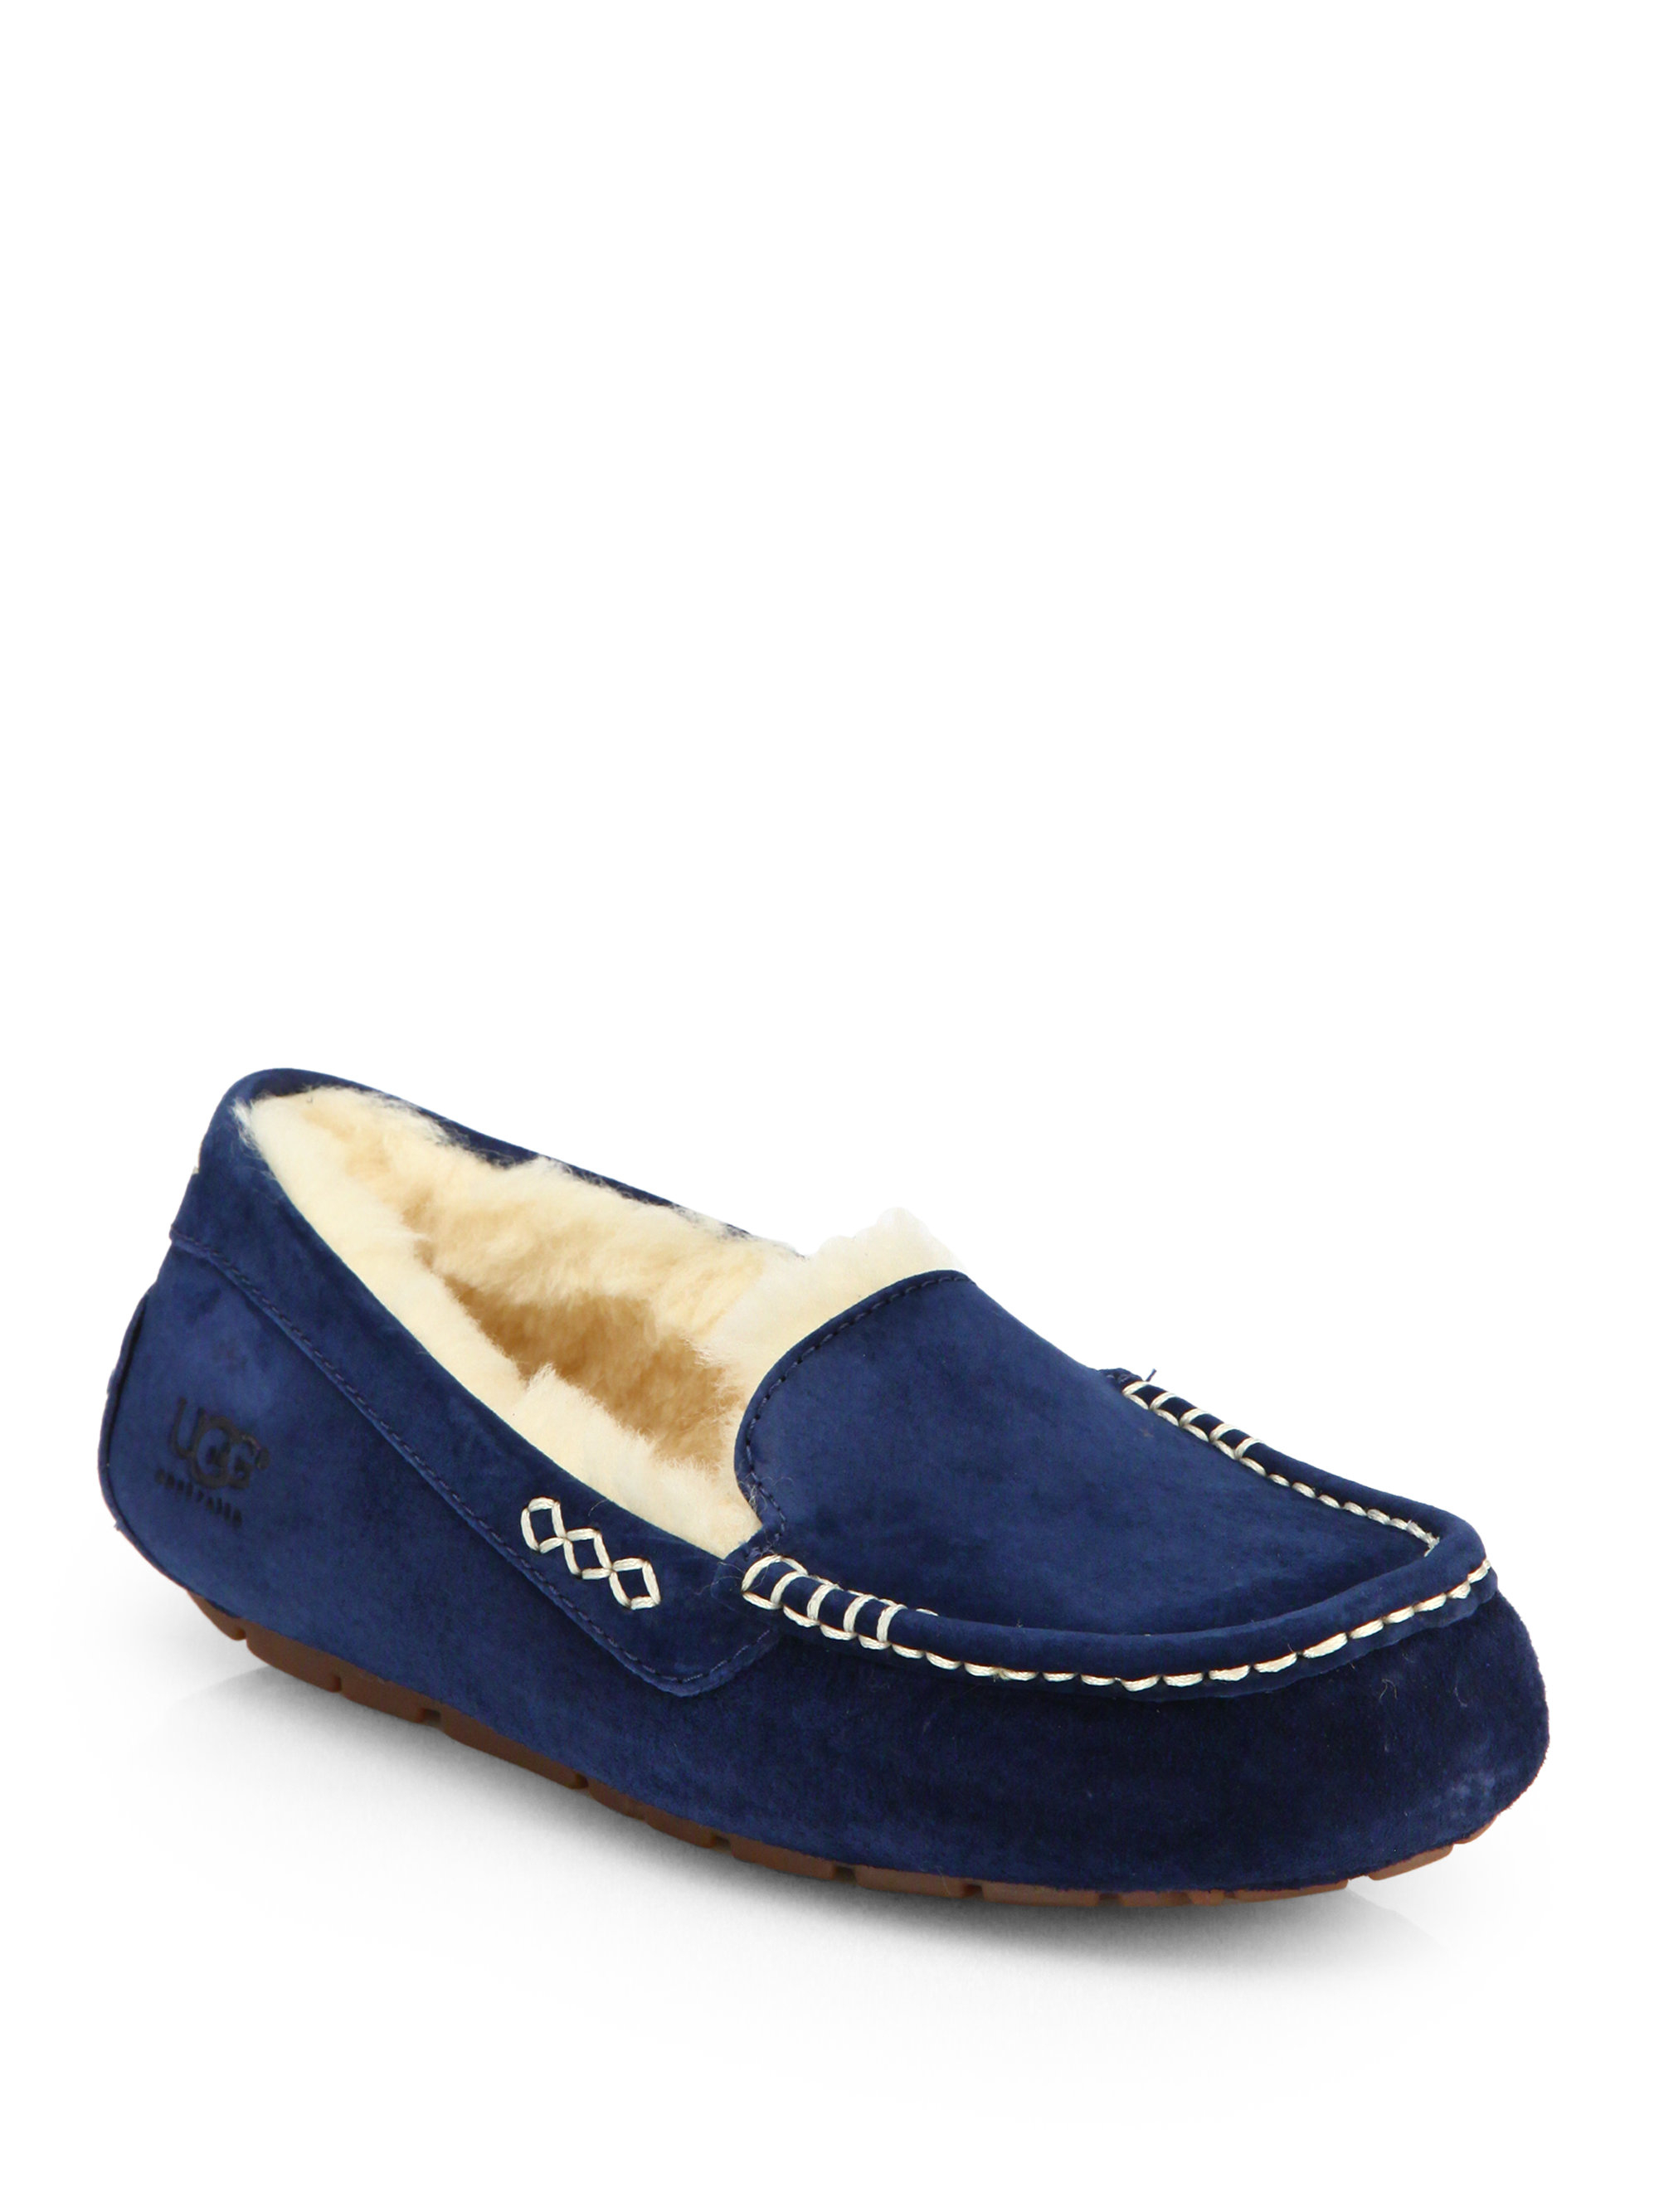 UGG Slippers ANSLEY suede Get Online Online For Sale 100% Authentic For Sale 4lQ73Tsd